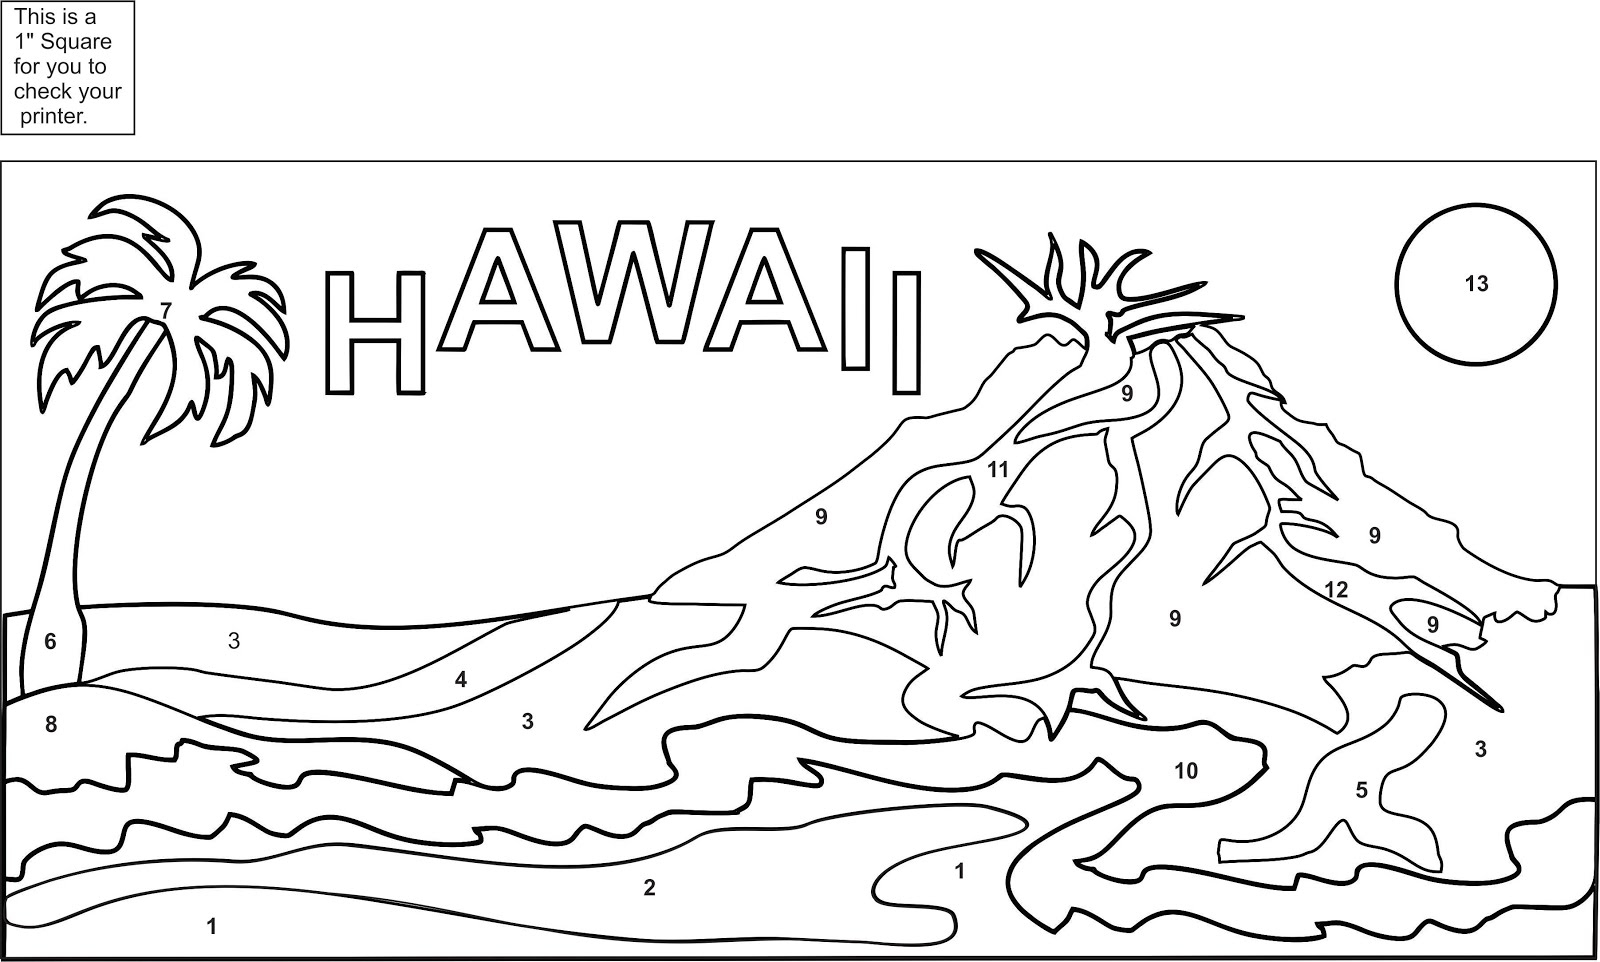 Hawaii License Plate Pattern 3.jpg